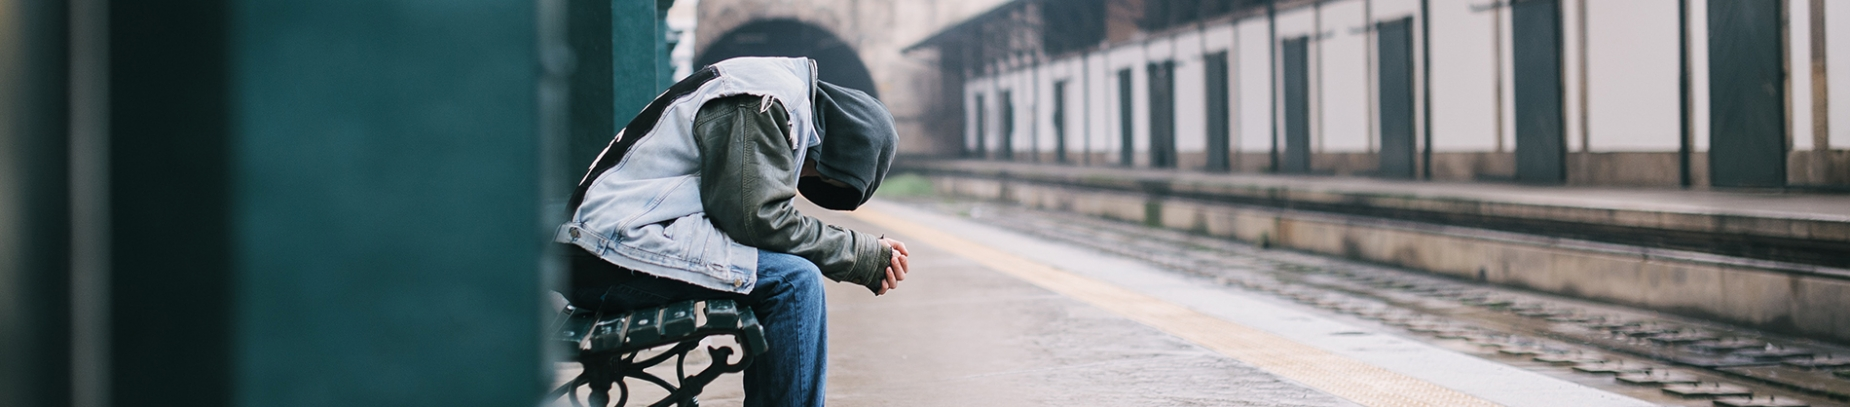 A man sat ay a train stop bowing his head into his hands